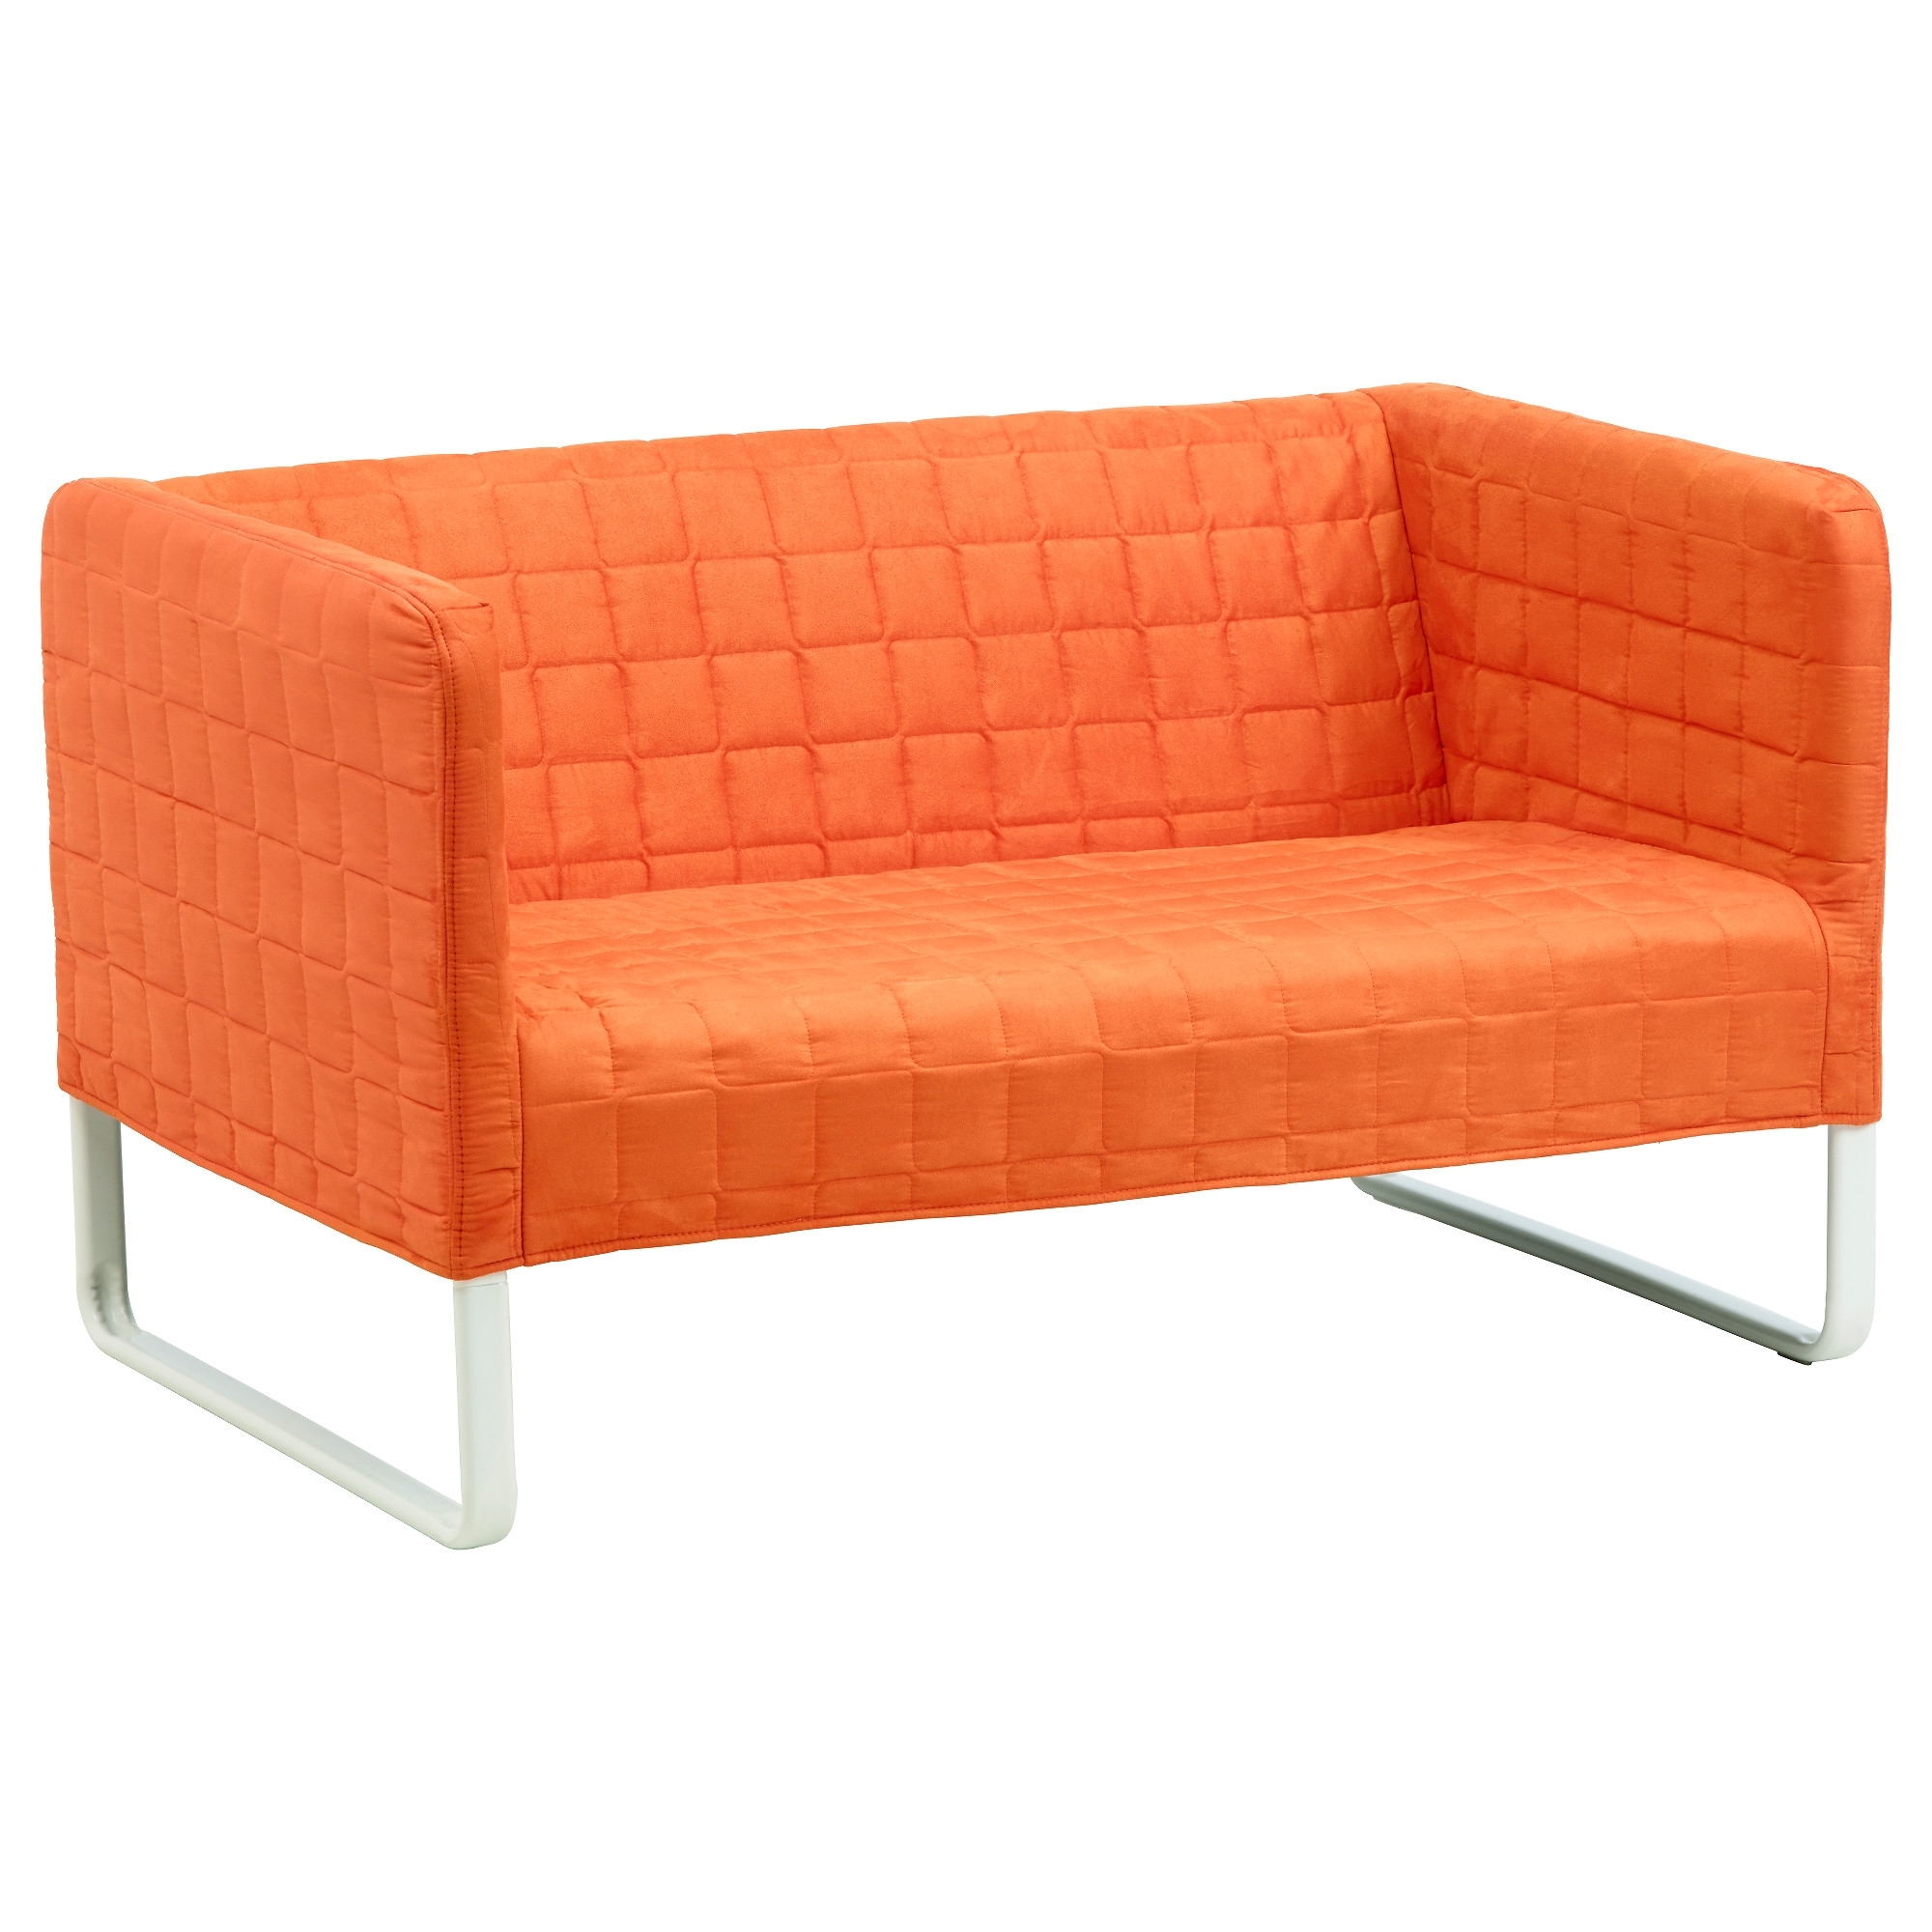 Famous Two Seater Sofas (View 6 of 15)